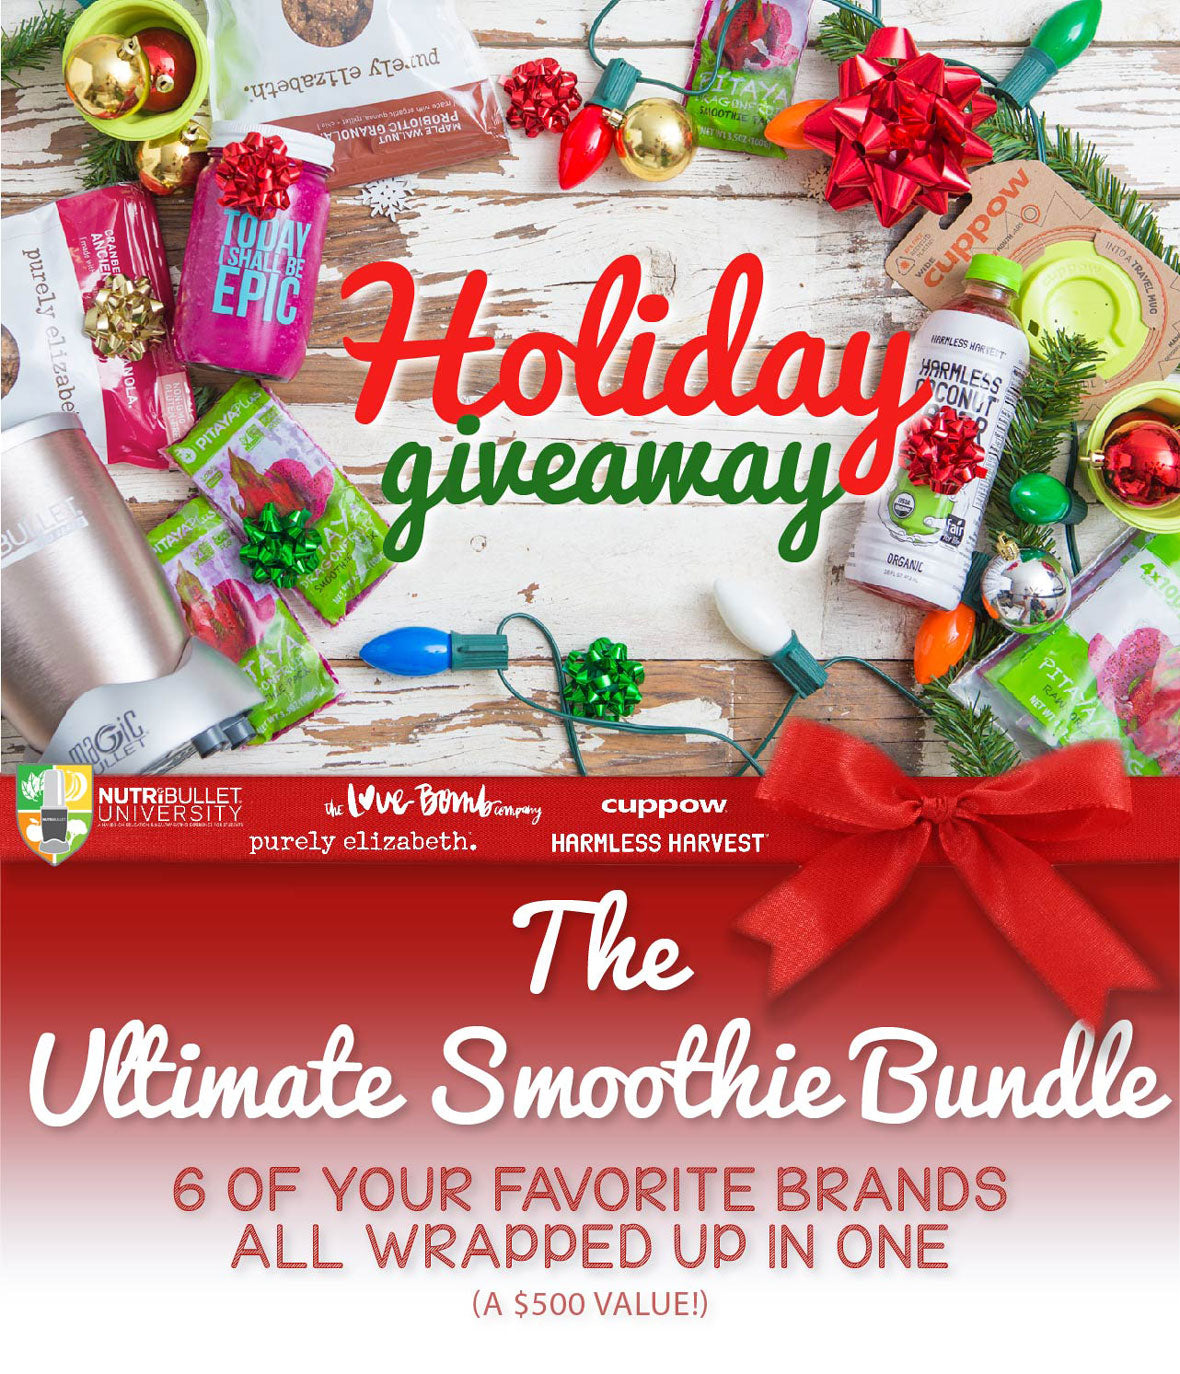 Pitaya Plus Holiday Giveaway